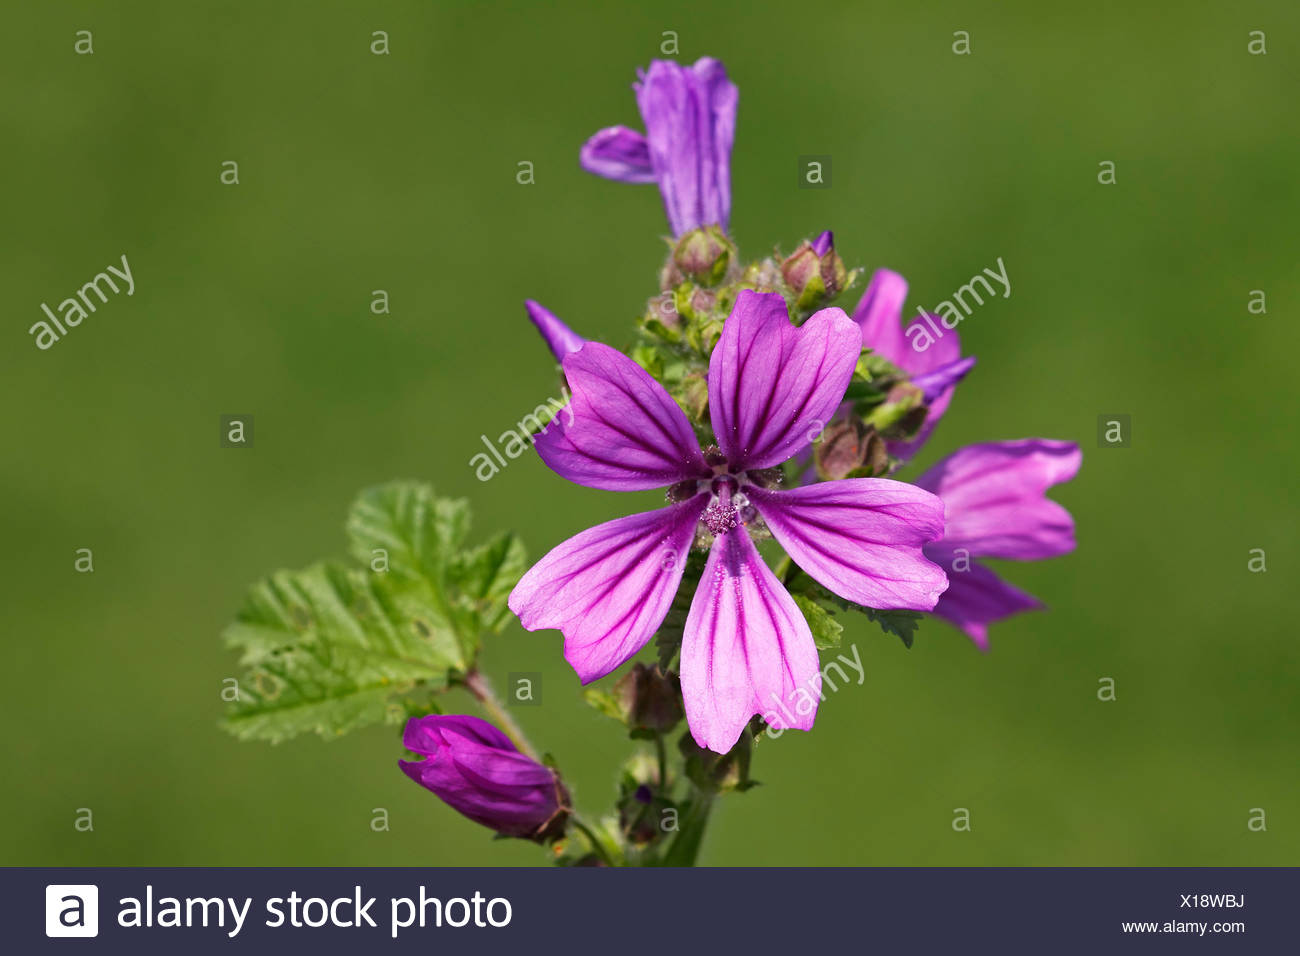 wild malva flowers stockfotos wild malva flowers bilder alamy. Black Bedroom Furniture Sets. Home Design Ideas